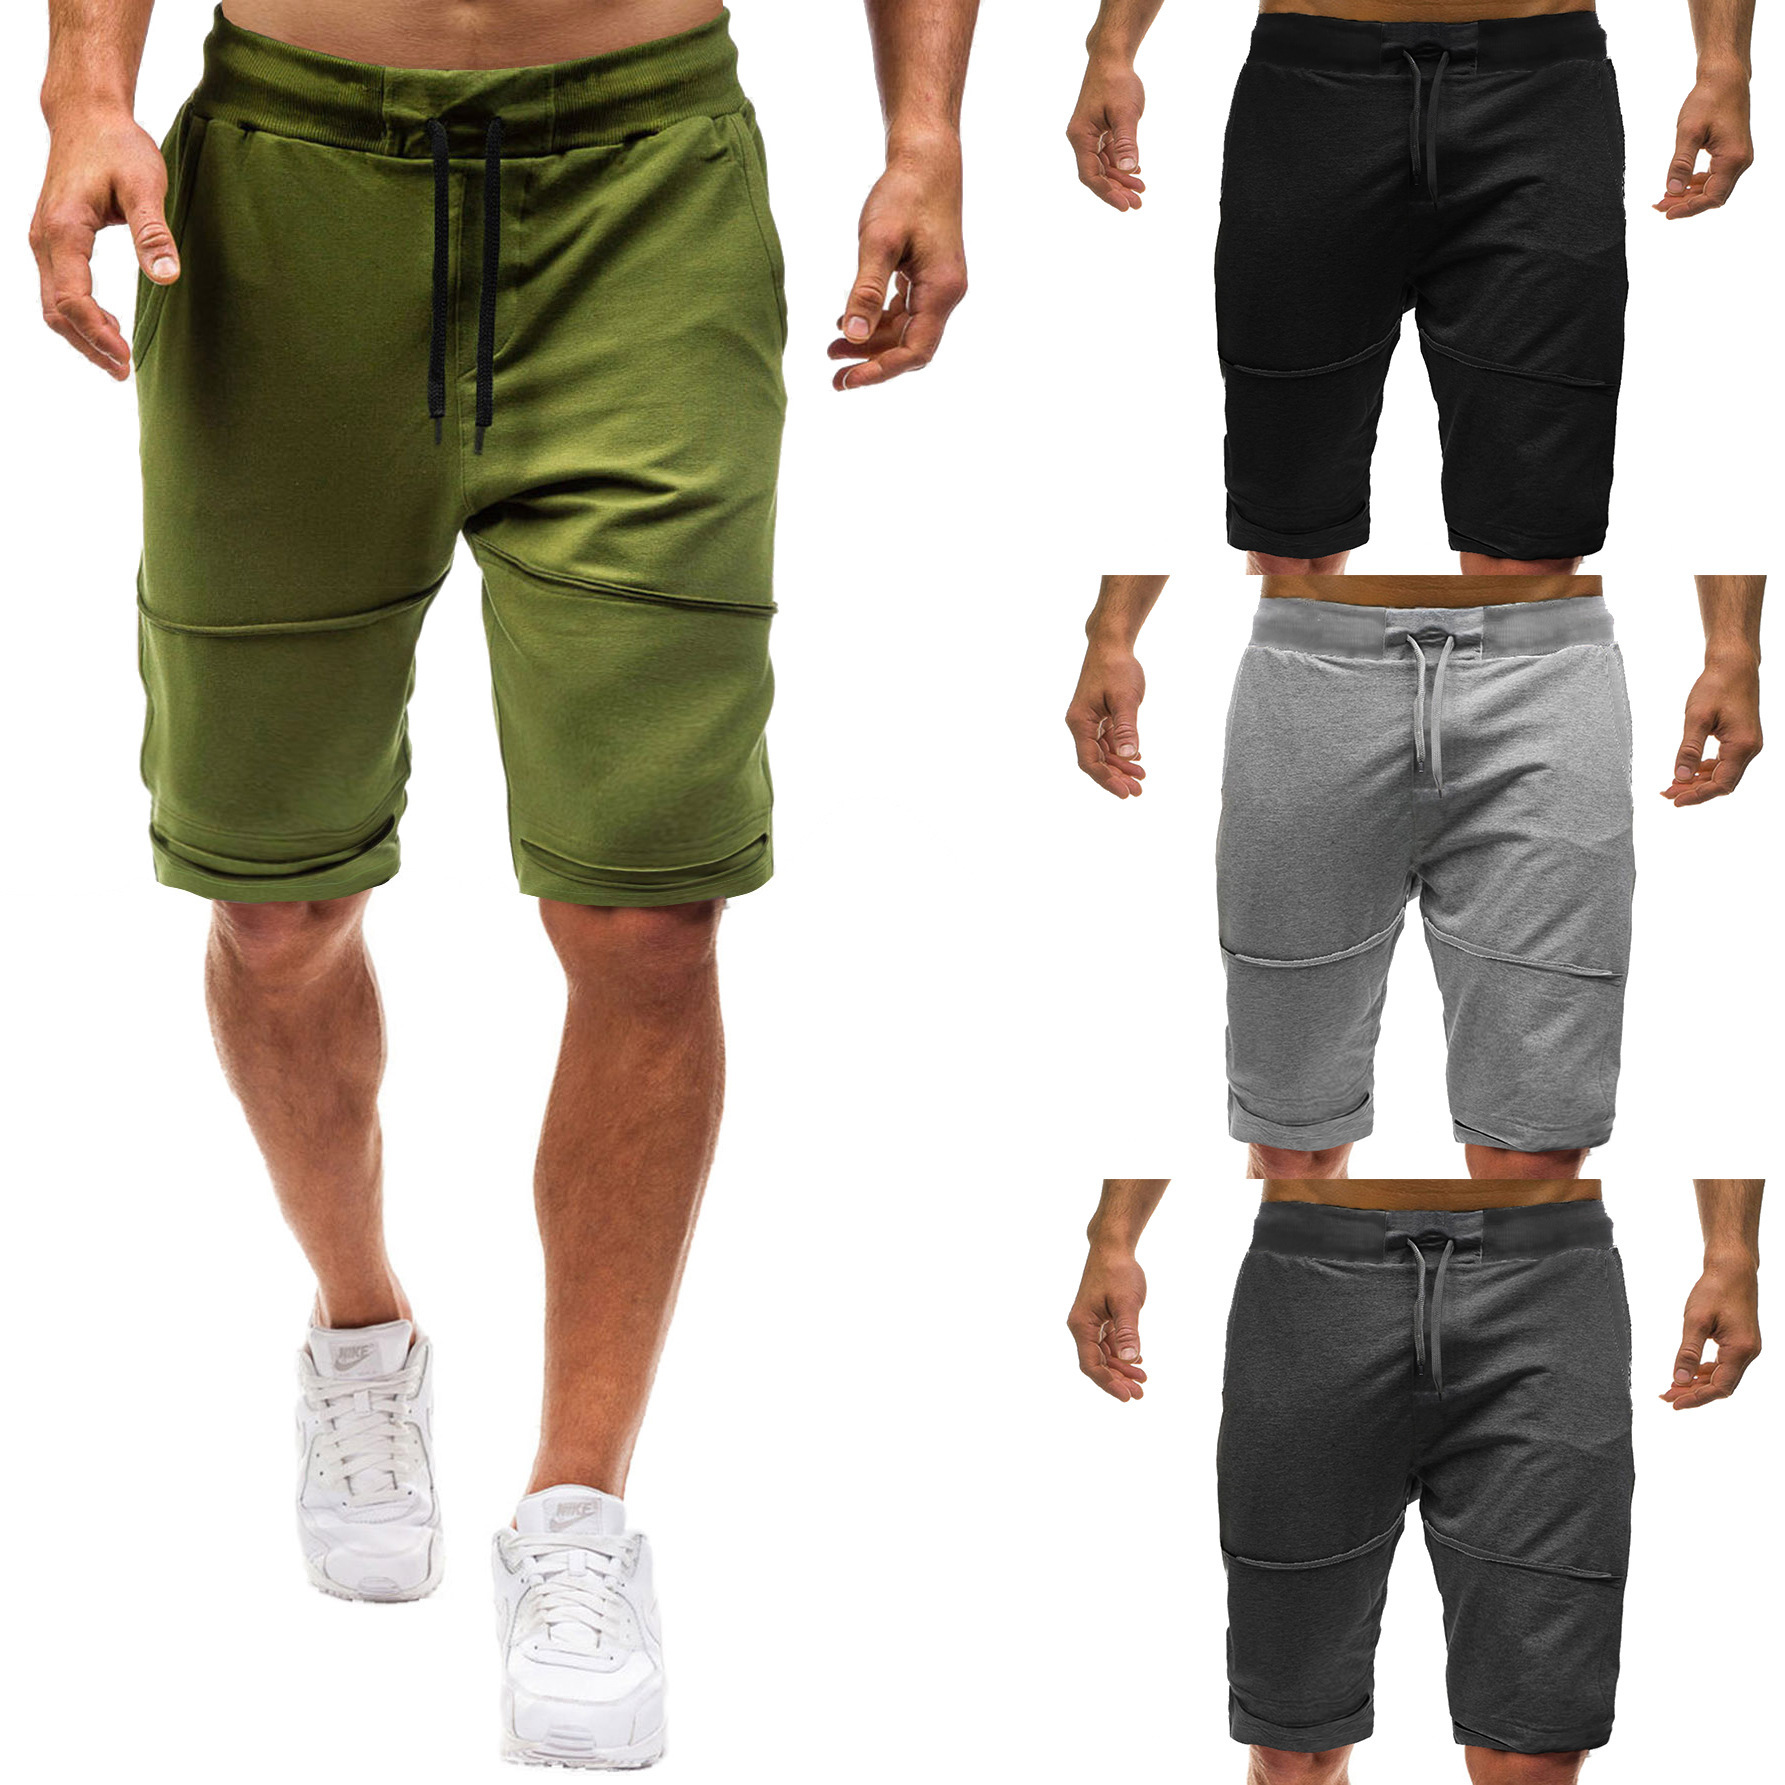 2020 Summer New Style Pants Large Size Men With Holes Shorts Shorts Men's Sports Men's Shorts